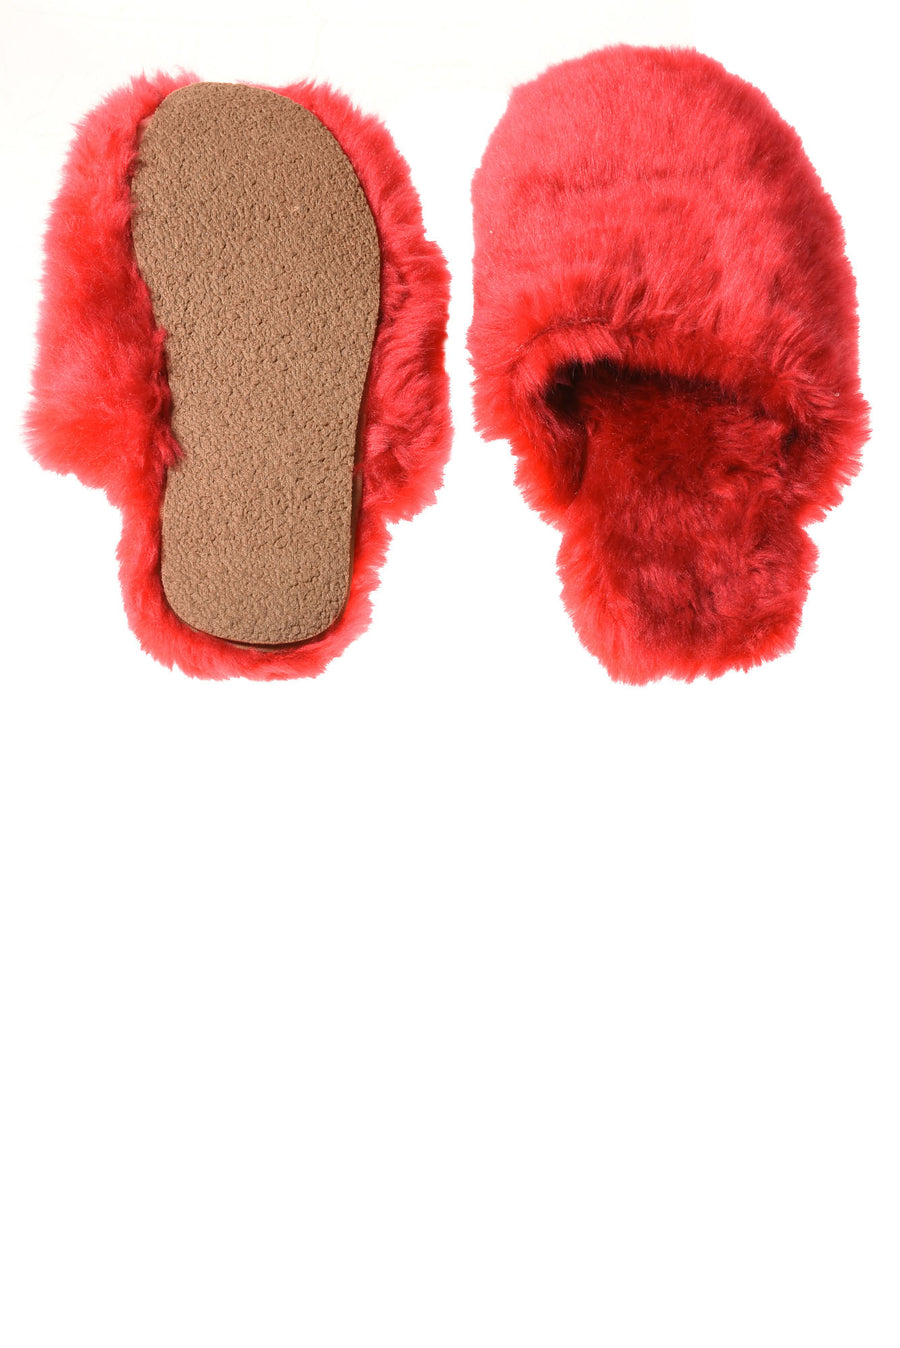 Women's Slippers By No Brand